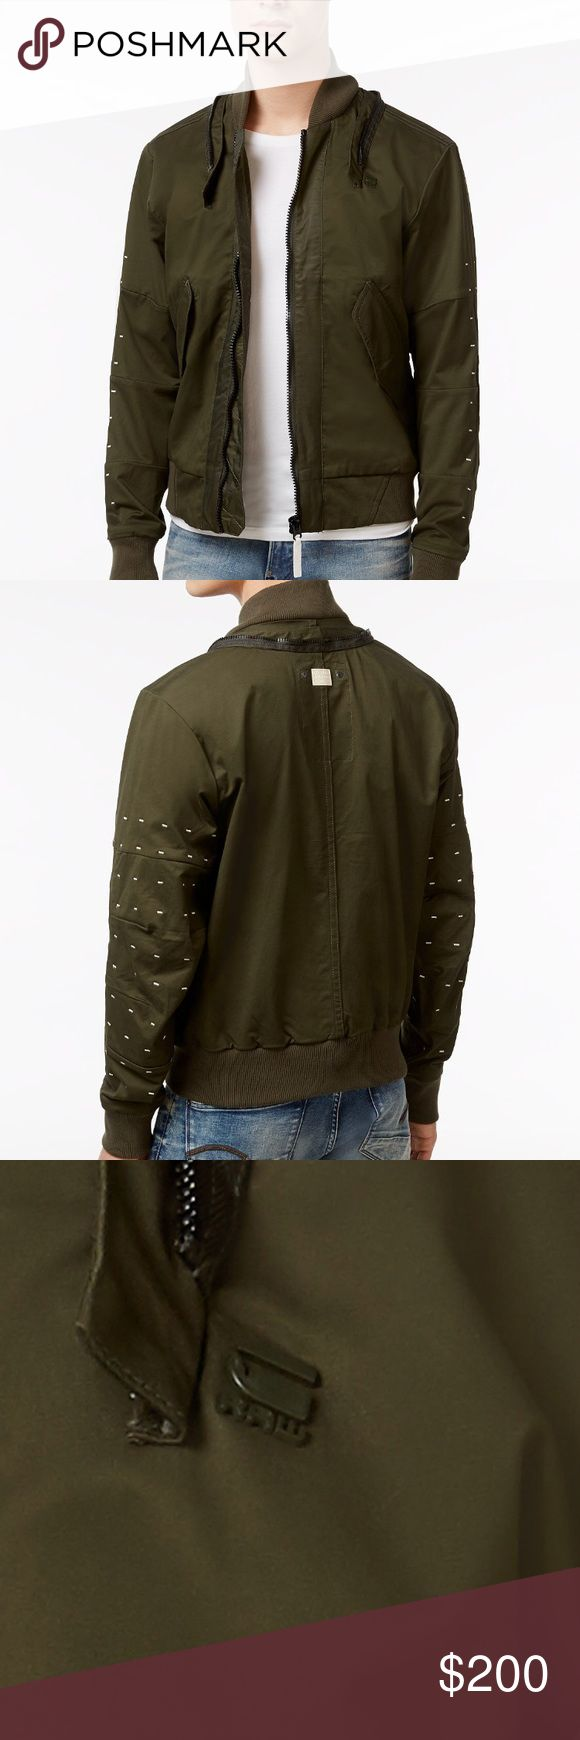 NWT G-Star RAW MS Submarine Rackam Bomber Jacket G-Star RAW elevates your casual style with this cool hooded bomber jacket, the perfect layer for your weekend-ready look.  Attached hood with drawstrings Front zipper closure  Two pockets at front  Stitching detail at sleeves Cotton/elastane Dry clean Imported G-Star Raw Jackets & Coats Bomber & Varsity